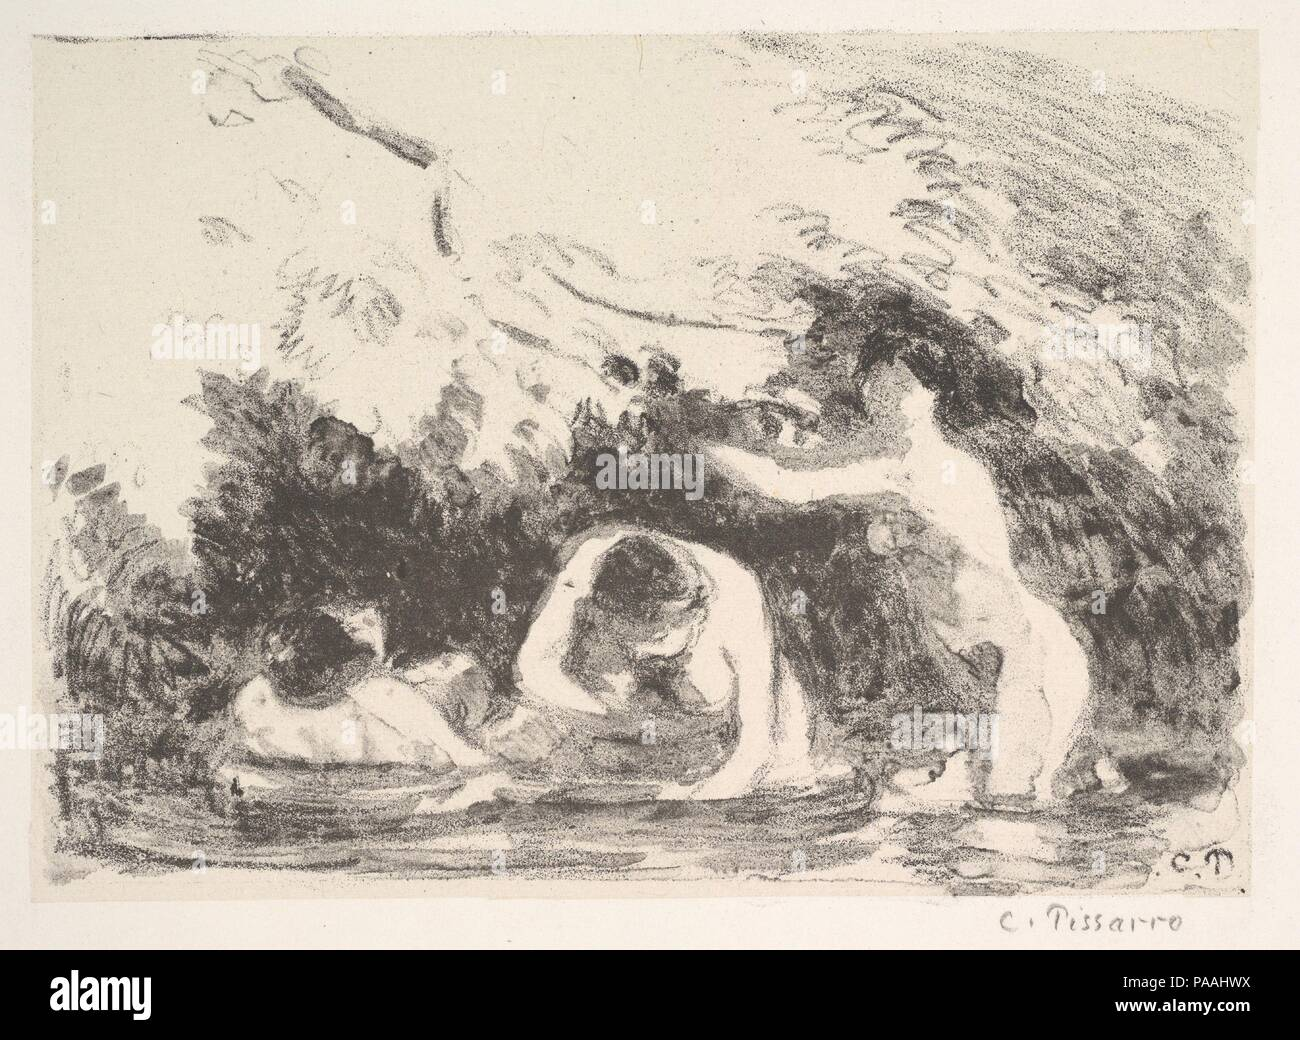 Bathers in the Shade of Wooded Banks. Artist: Camille Pissarro (French, Charlotte Amalie, Saint Thomas 1830-1903 Paris). Dimensions: sheet: 13 3/4 x 18 7/8 in. (35 x 48 cm)  plate: 6 1/8 x 8 5/8 in. (15.6 x 21.9 cm). Publisher: Published by l'Estampe Originale in March, 1895. Date: 1894. Museum: Metropolitan Museum of Art, New York, USA. Stock Photo